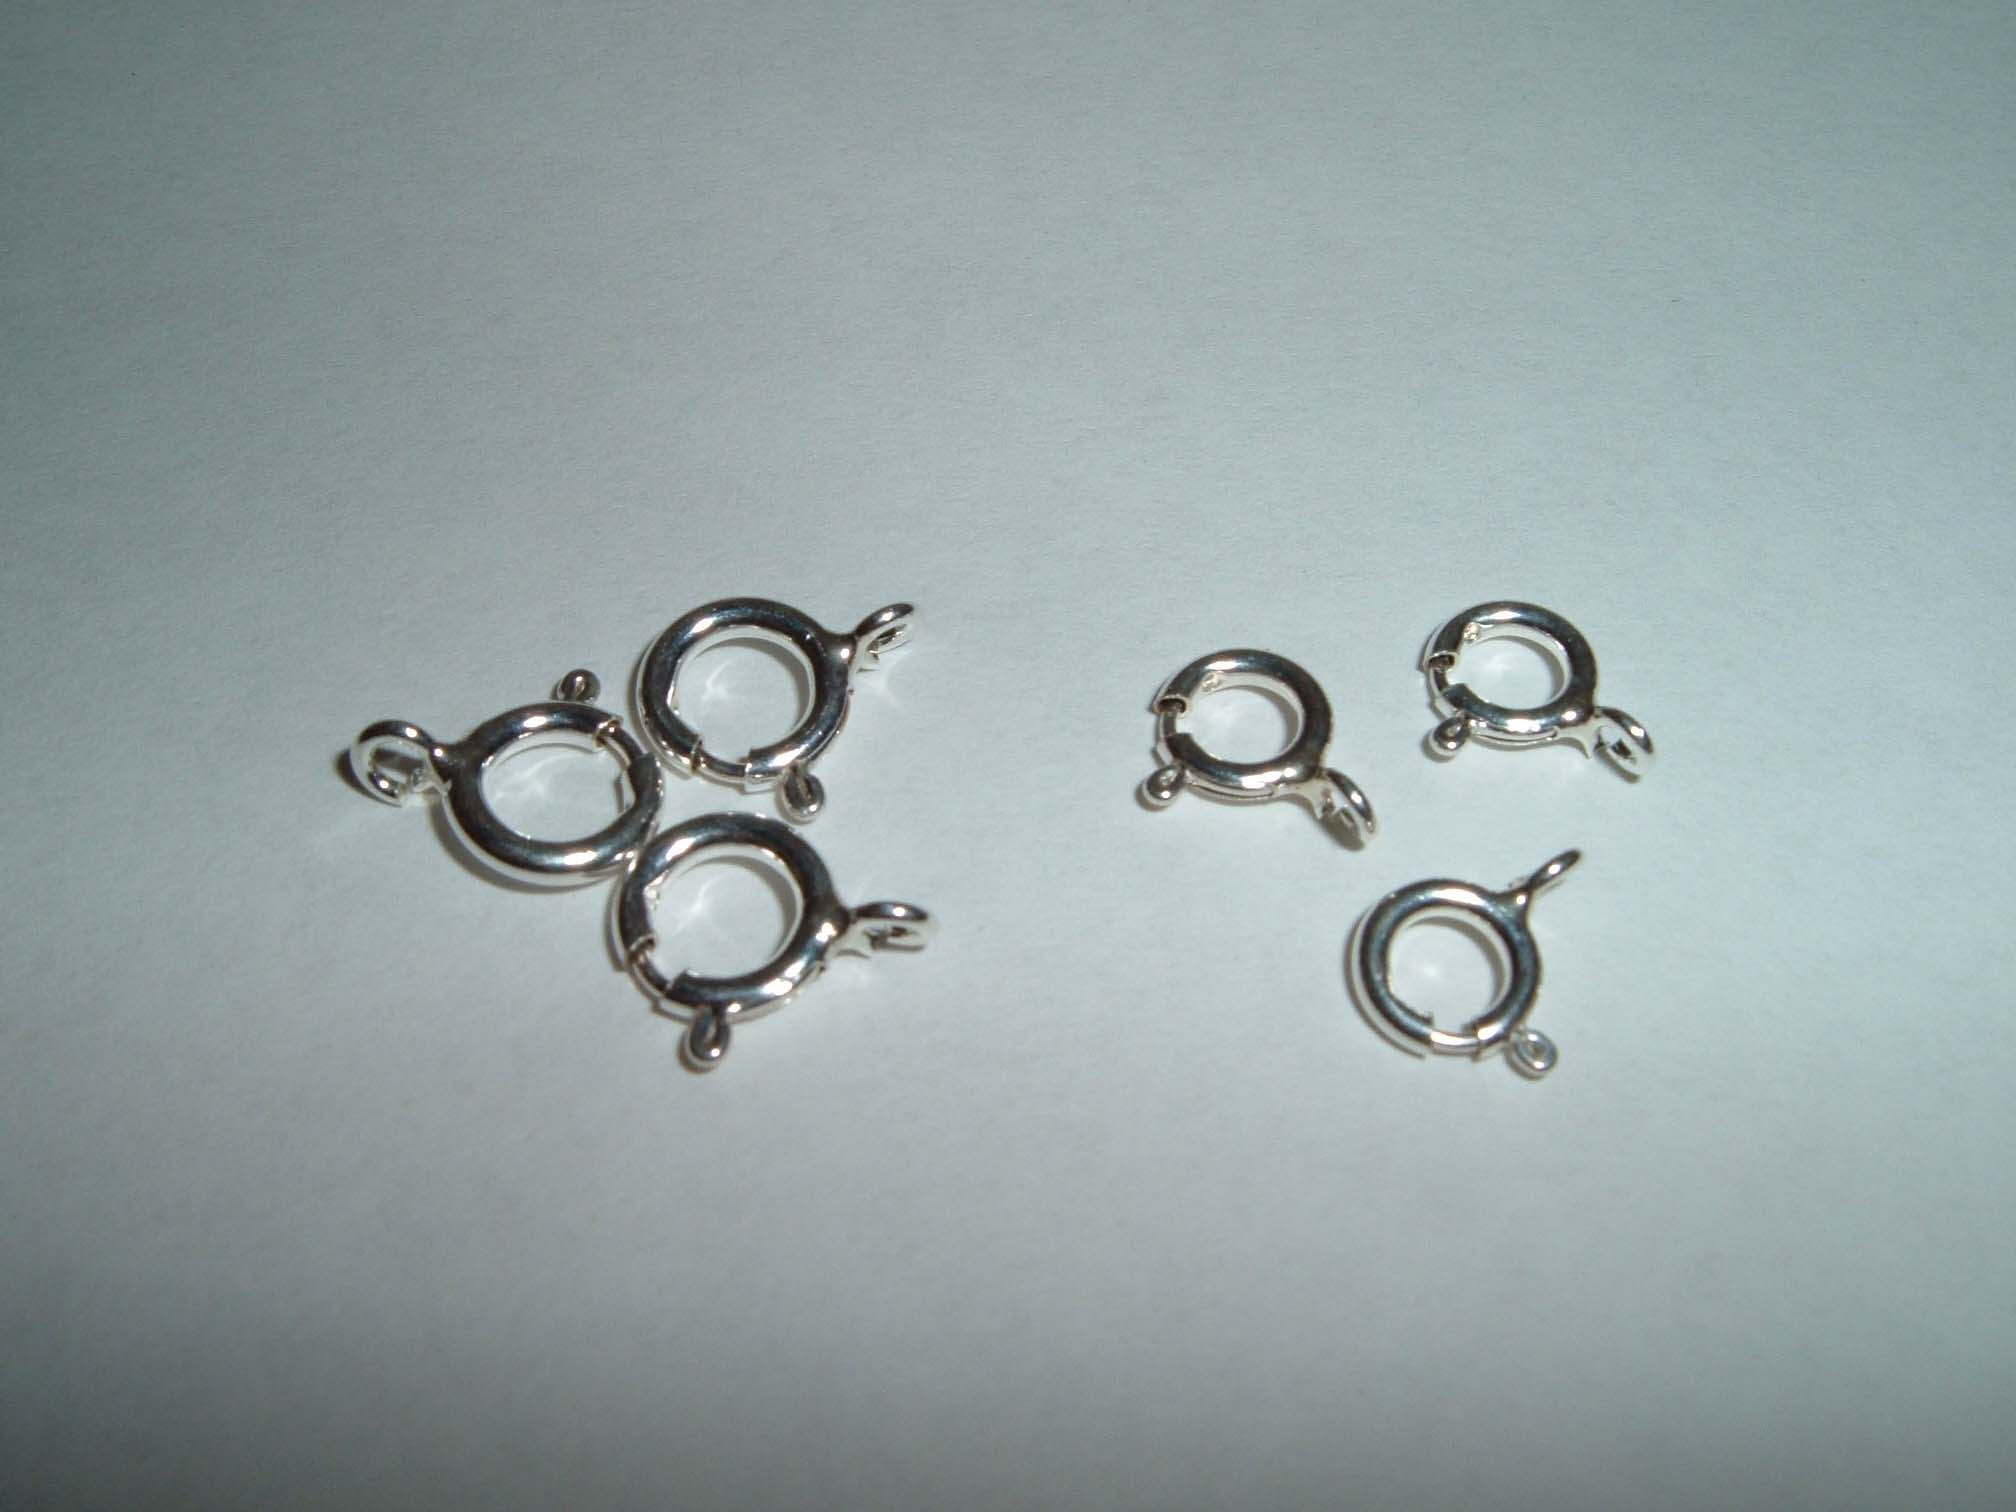 Bolt Rings & Clasps Sterling silver 5,6,7 & 8mm